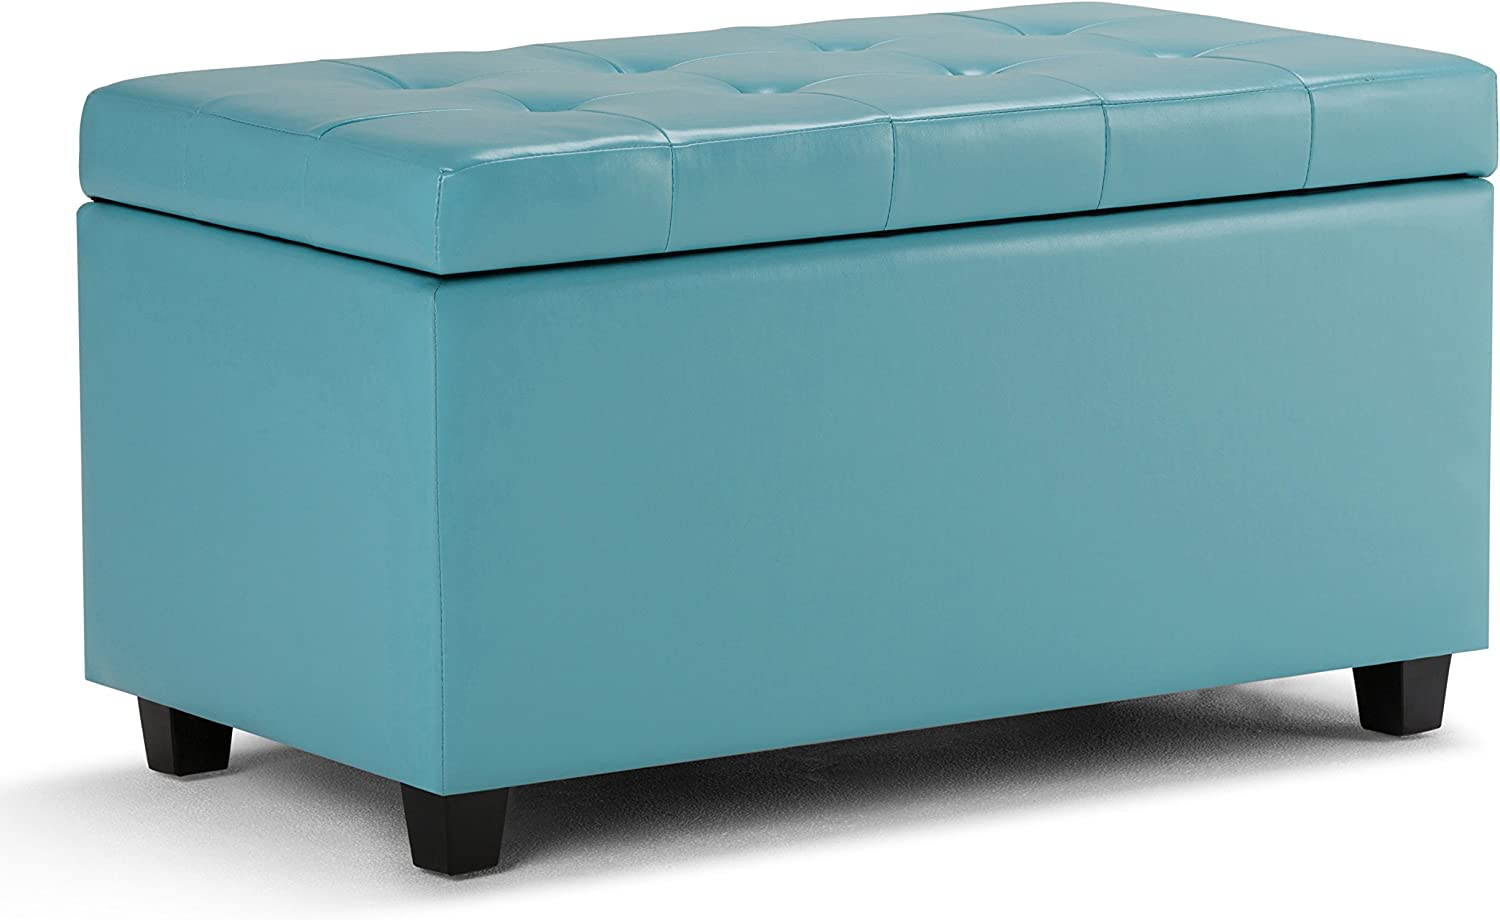 Simpli Home AY-S-38-BU Cosmopolitan 34 inch Wide ContemporaryStorage Ottoman in Soft Blue Faux Leather